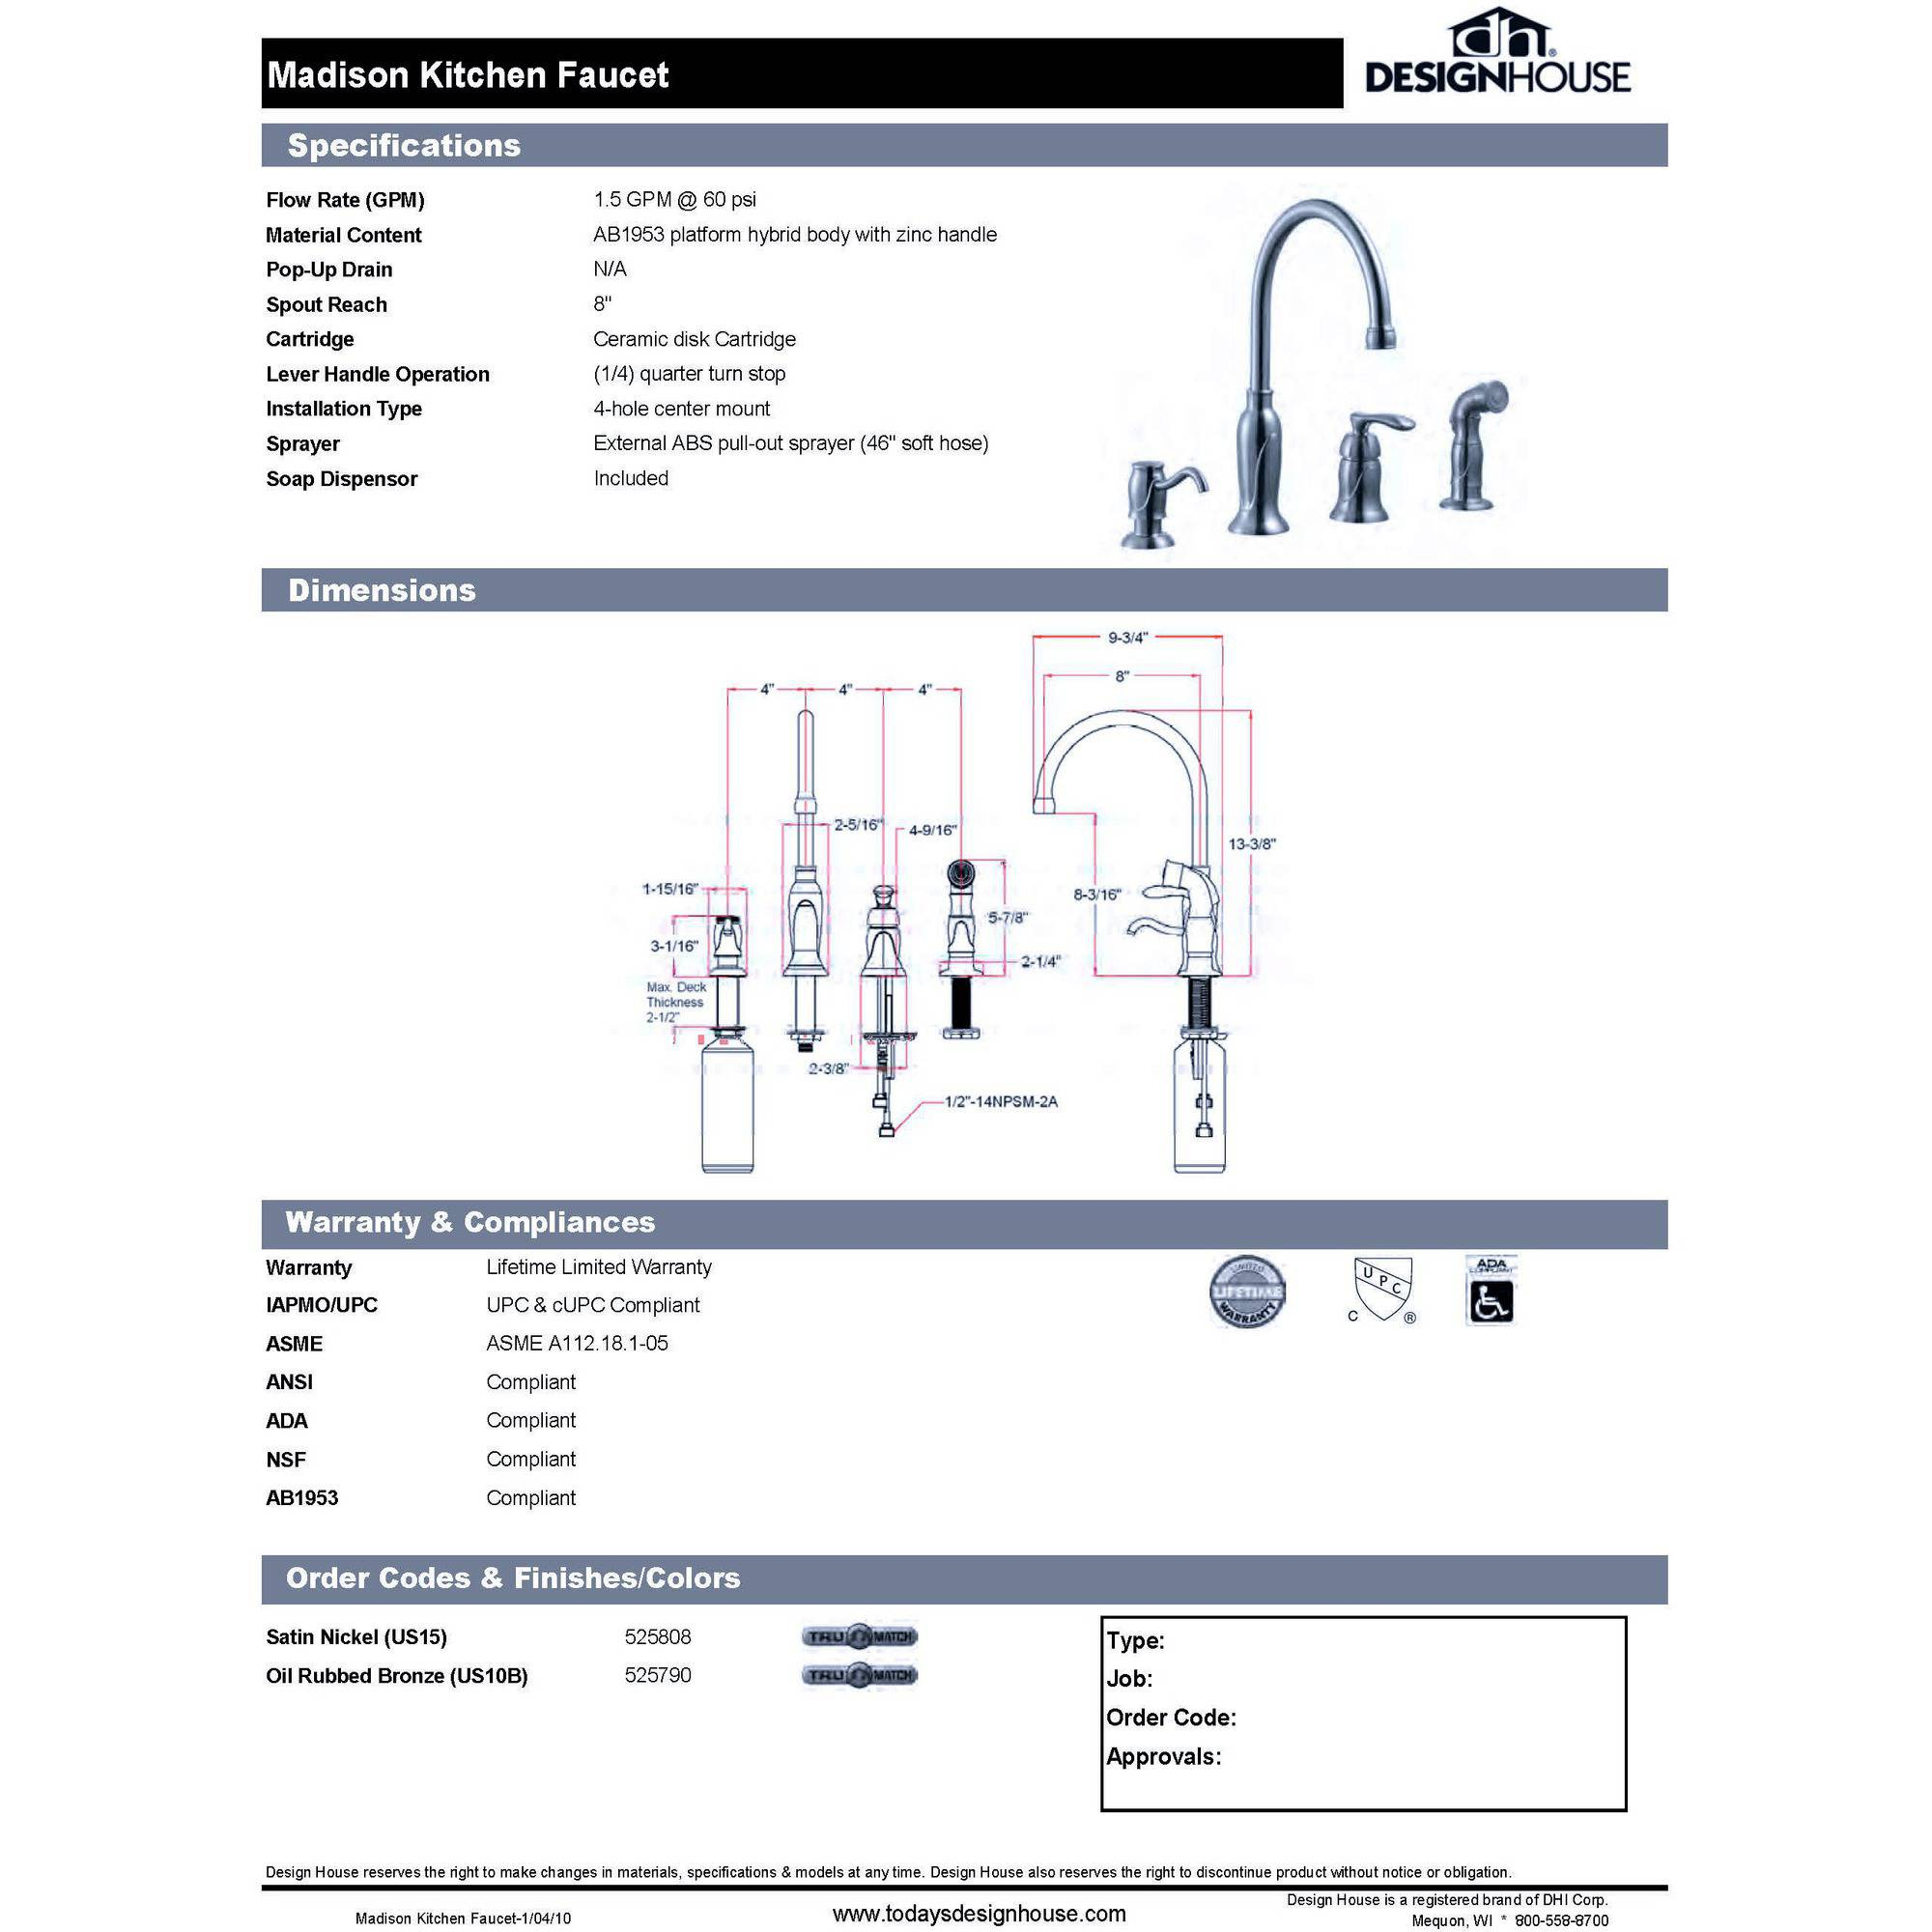 Design House 525790 Madison Kitchen Faucet With Sprayer And Soap Dispenser,  Oil Rubbed Bronze Finish   Walmart.com